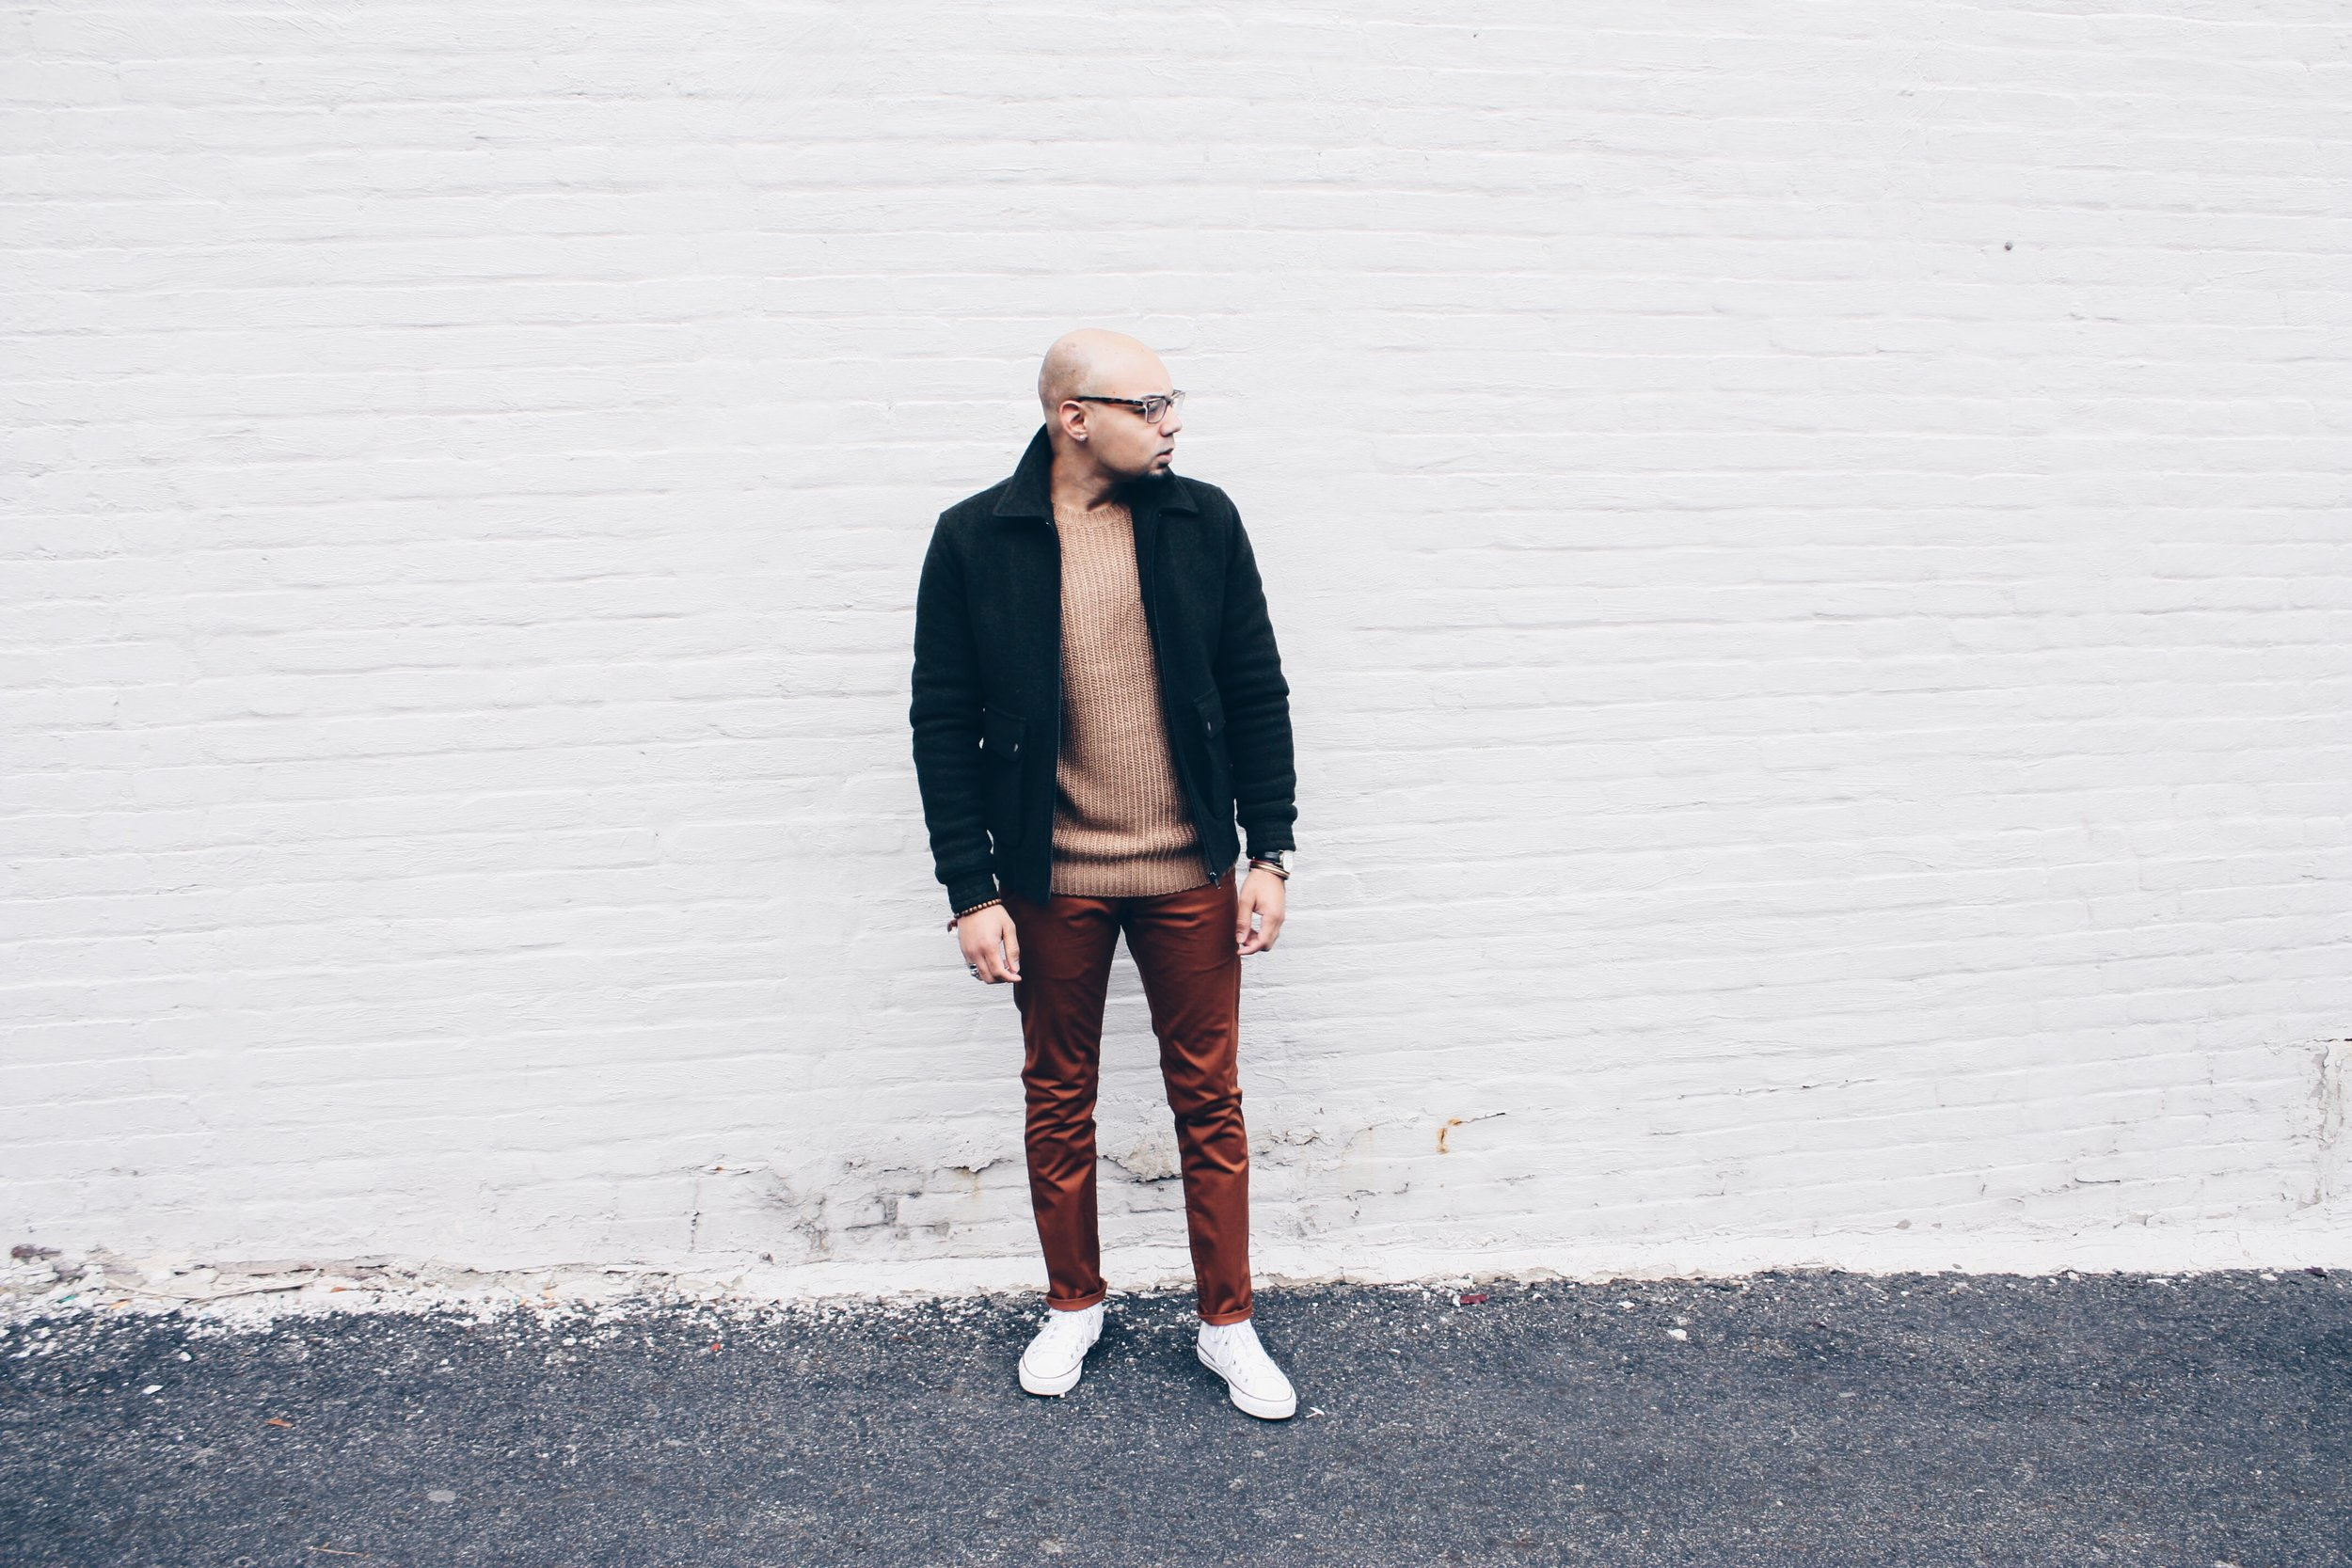 sam-c-perry-chunky-ribbed-knit-sweater-slim-chinos-full-look.jpg